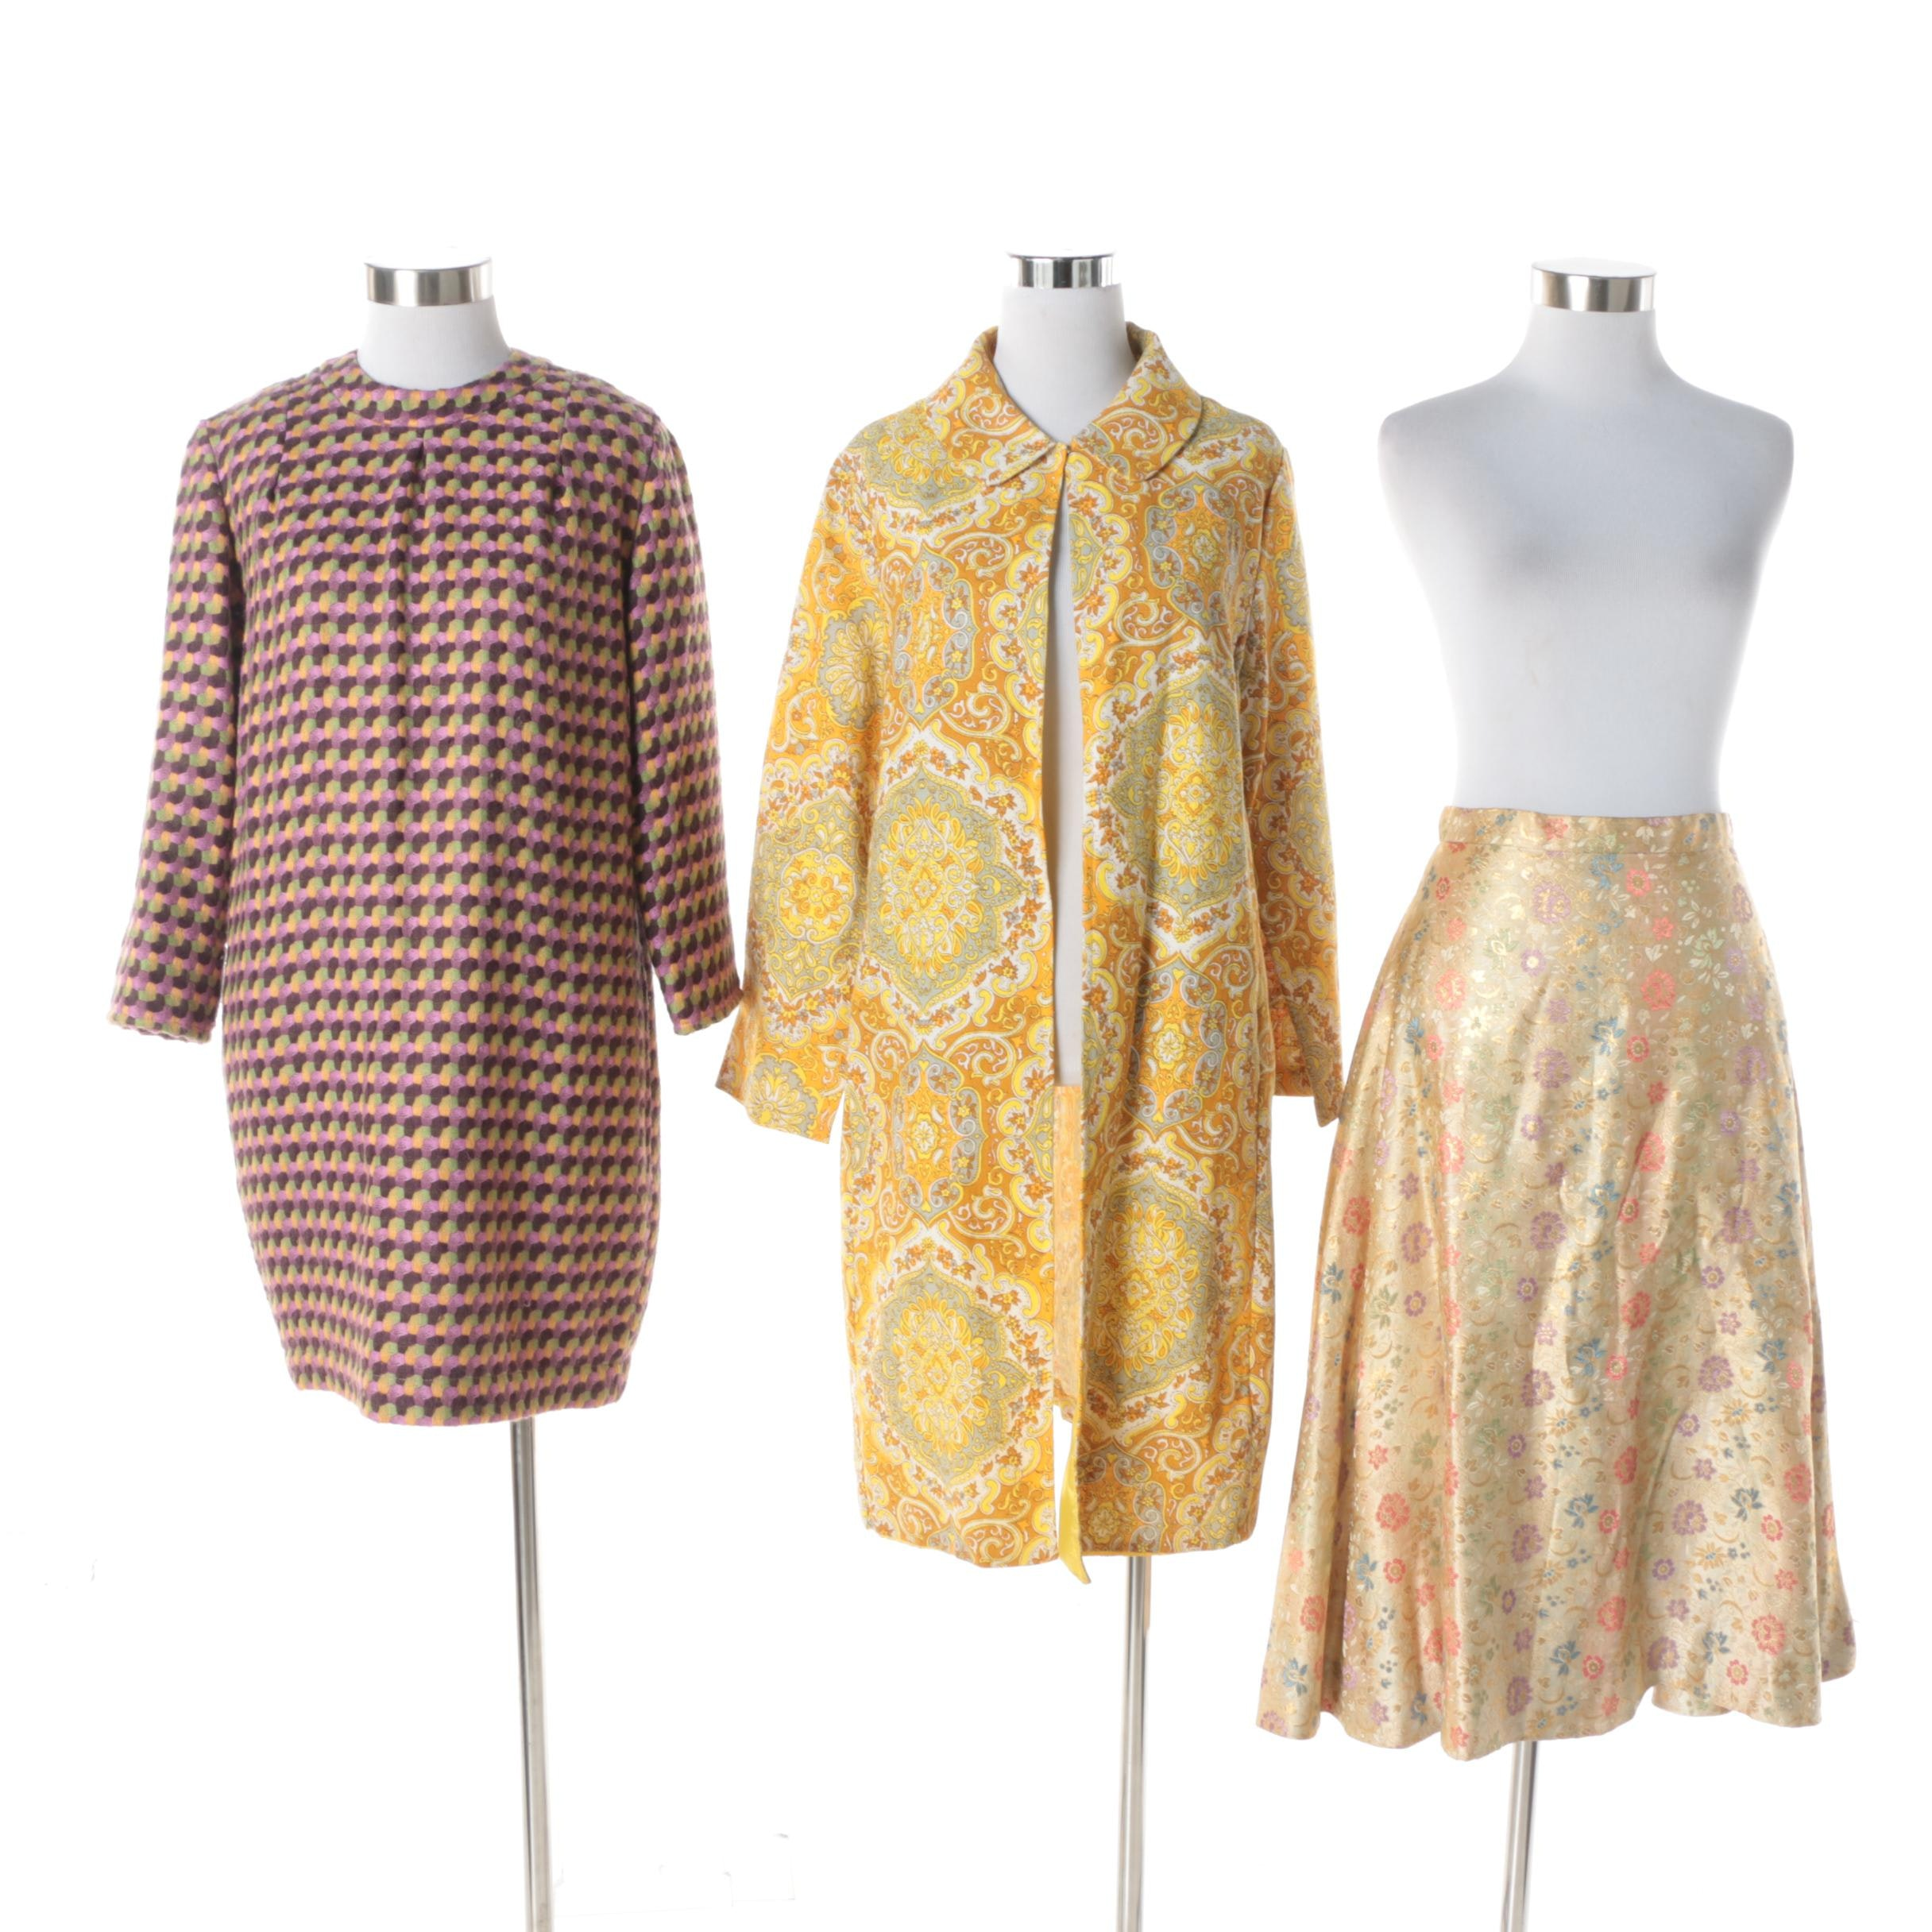 Women's Circa 1960s Vintage Duster, Wool Blend Dress, and Brocade Skirt